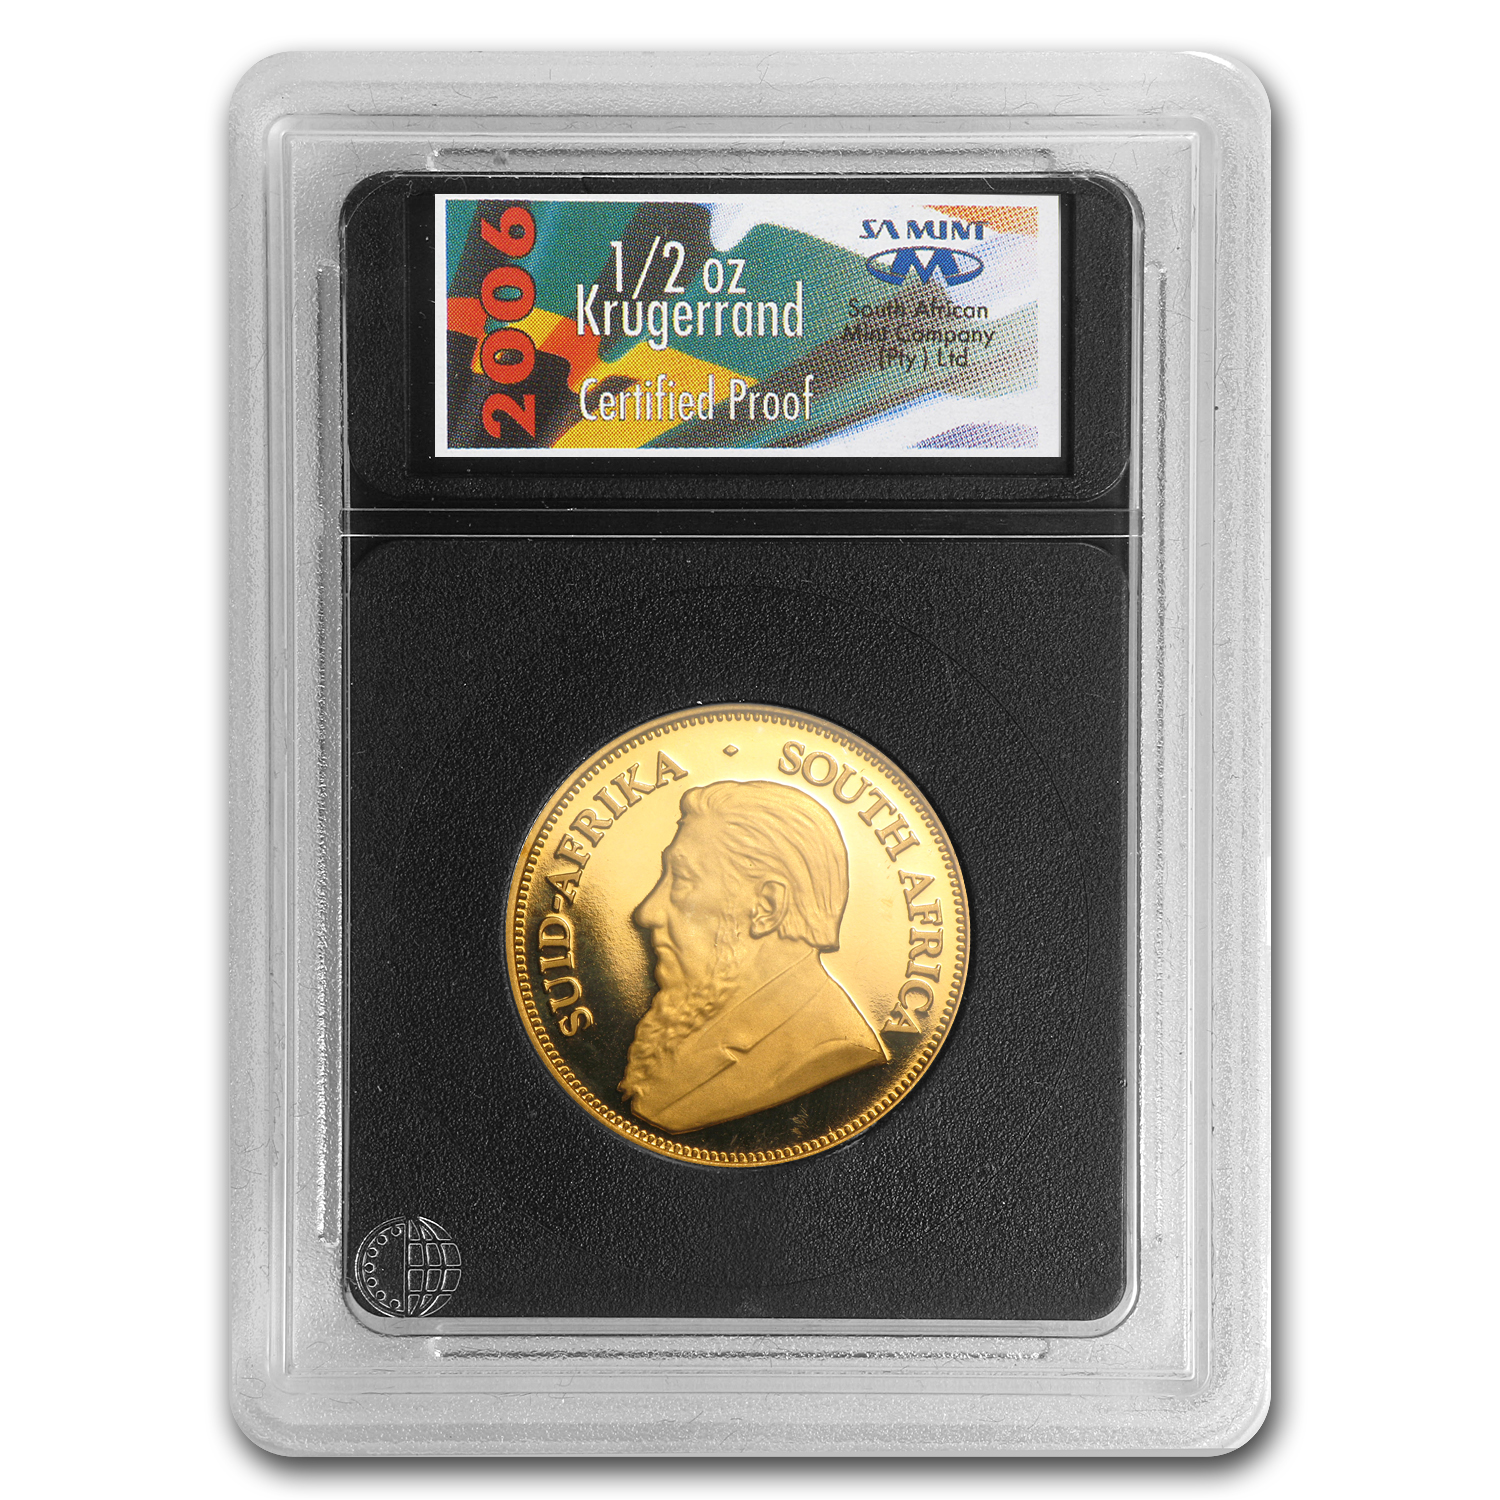 2006 South Africa 1/2 oz Proof Gold Krugerrand (Sealed by Mint)